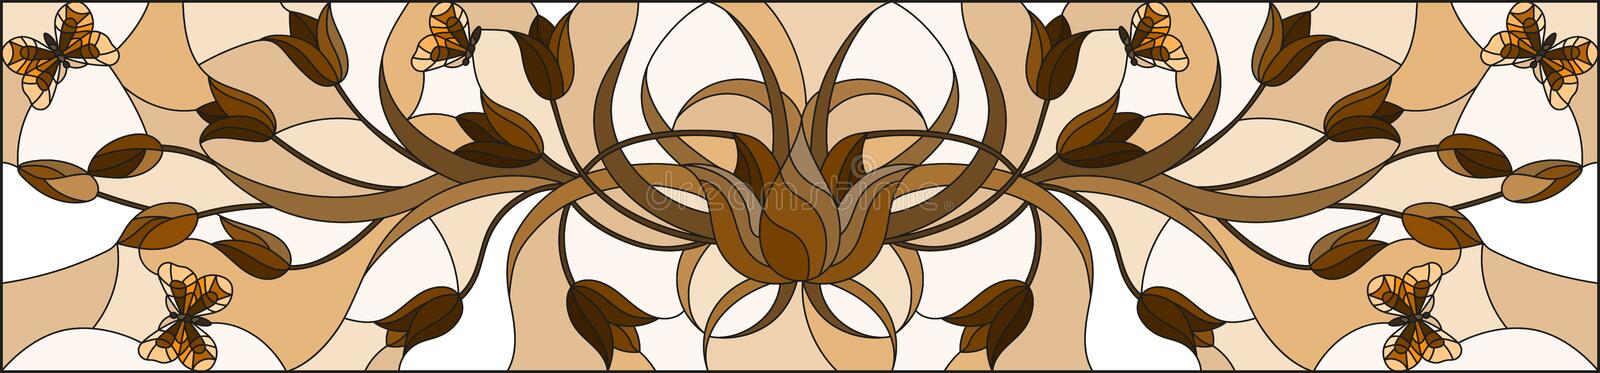 Stained glass illustration with abstract curly  flower and   butterfly on brown background , horizontal image, Sepia,monochrome. Illustration in stained glass stock illustration